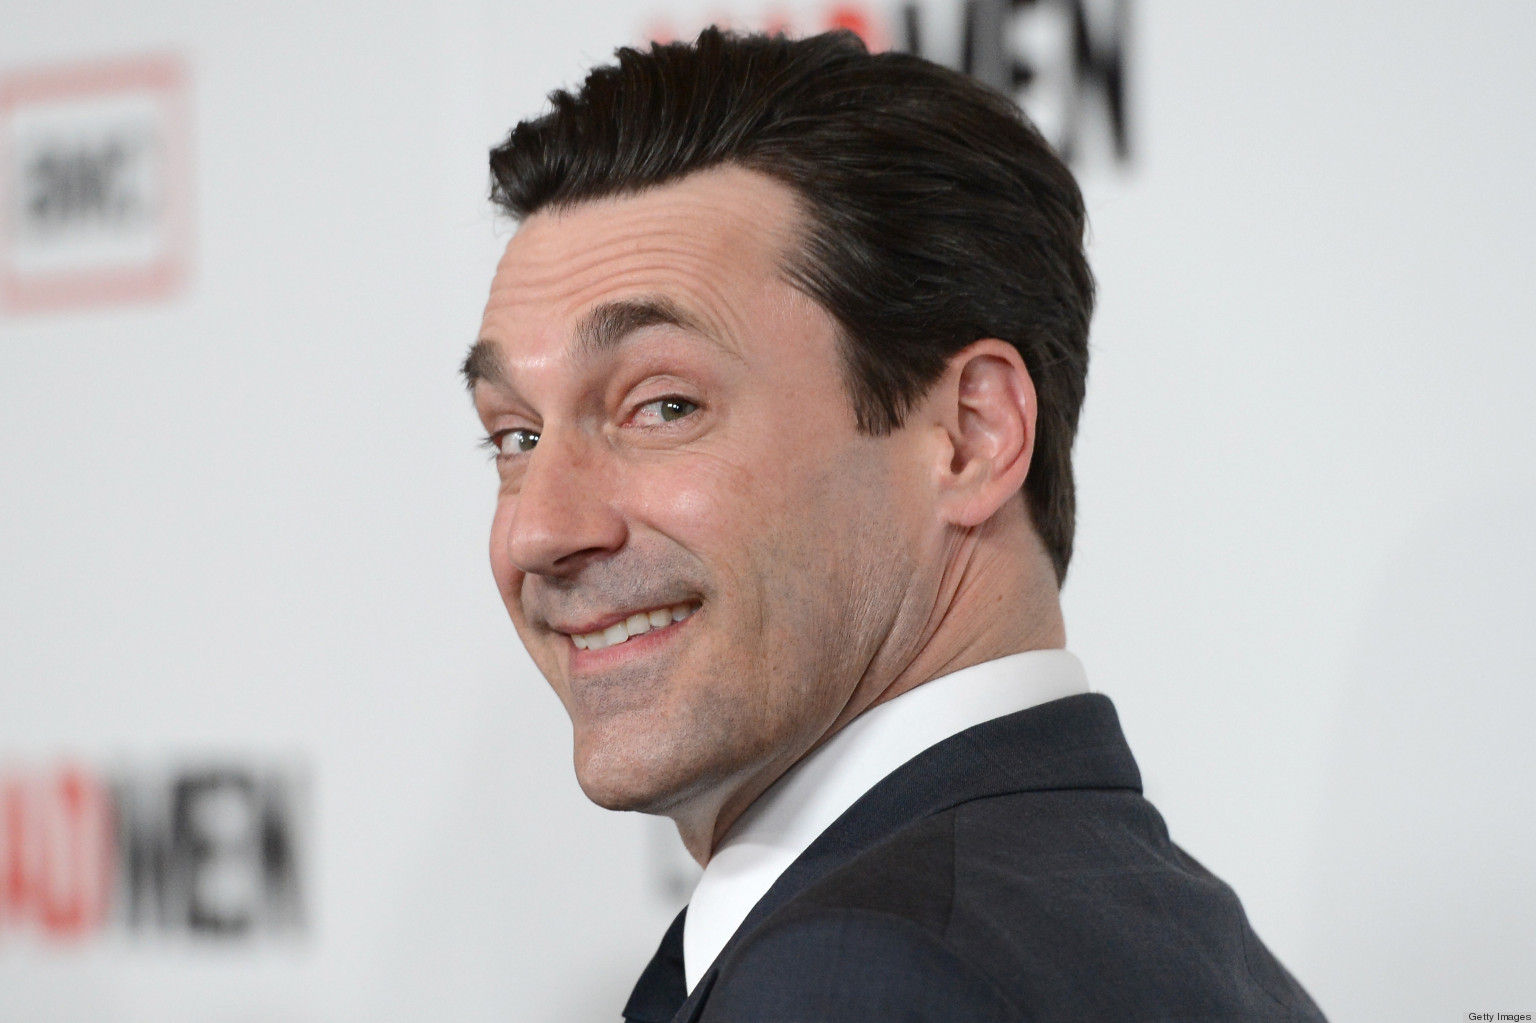 More proof that Jon Hamm totally gets us